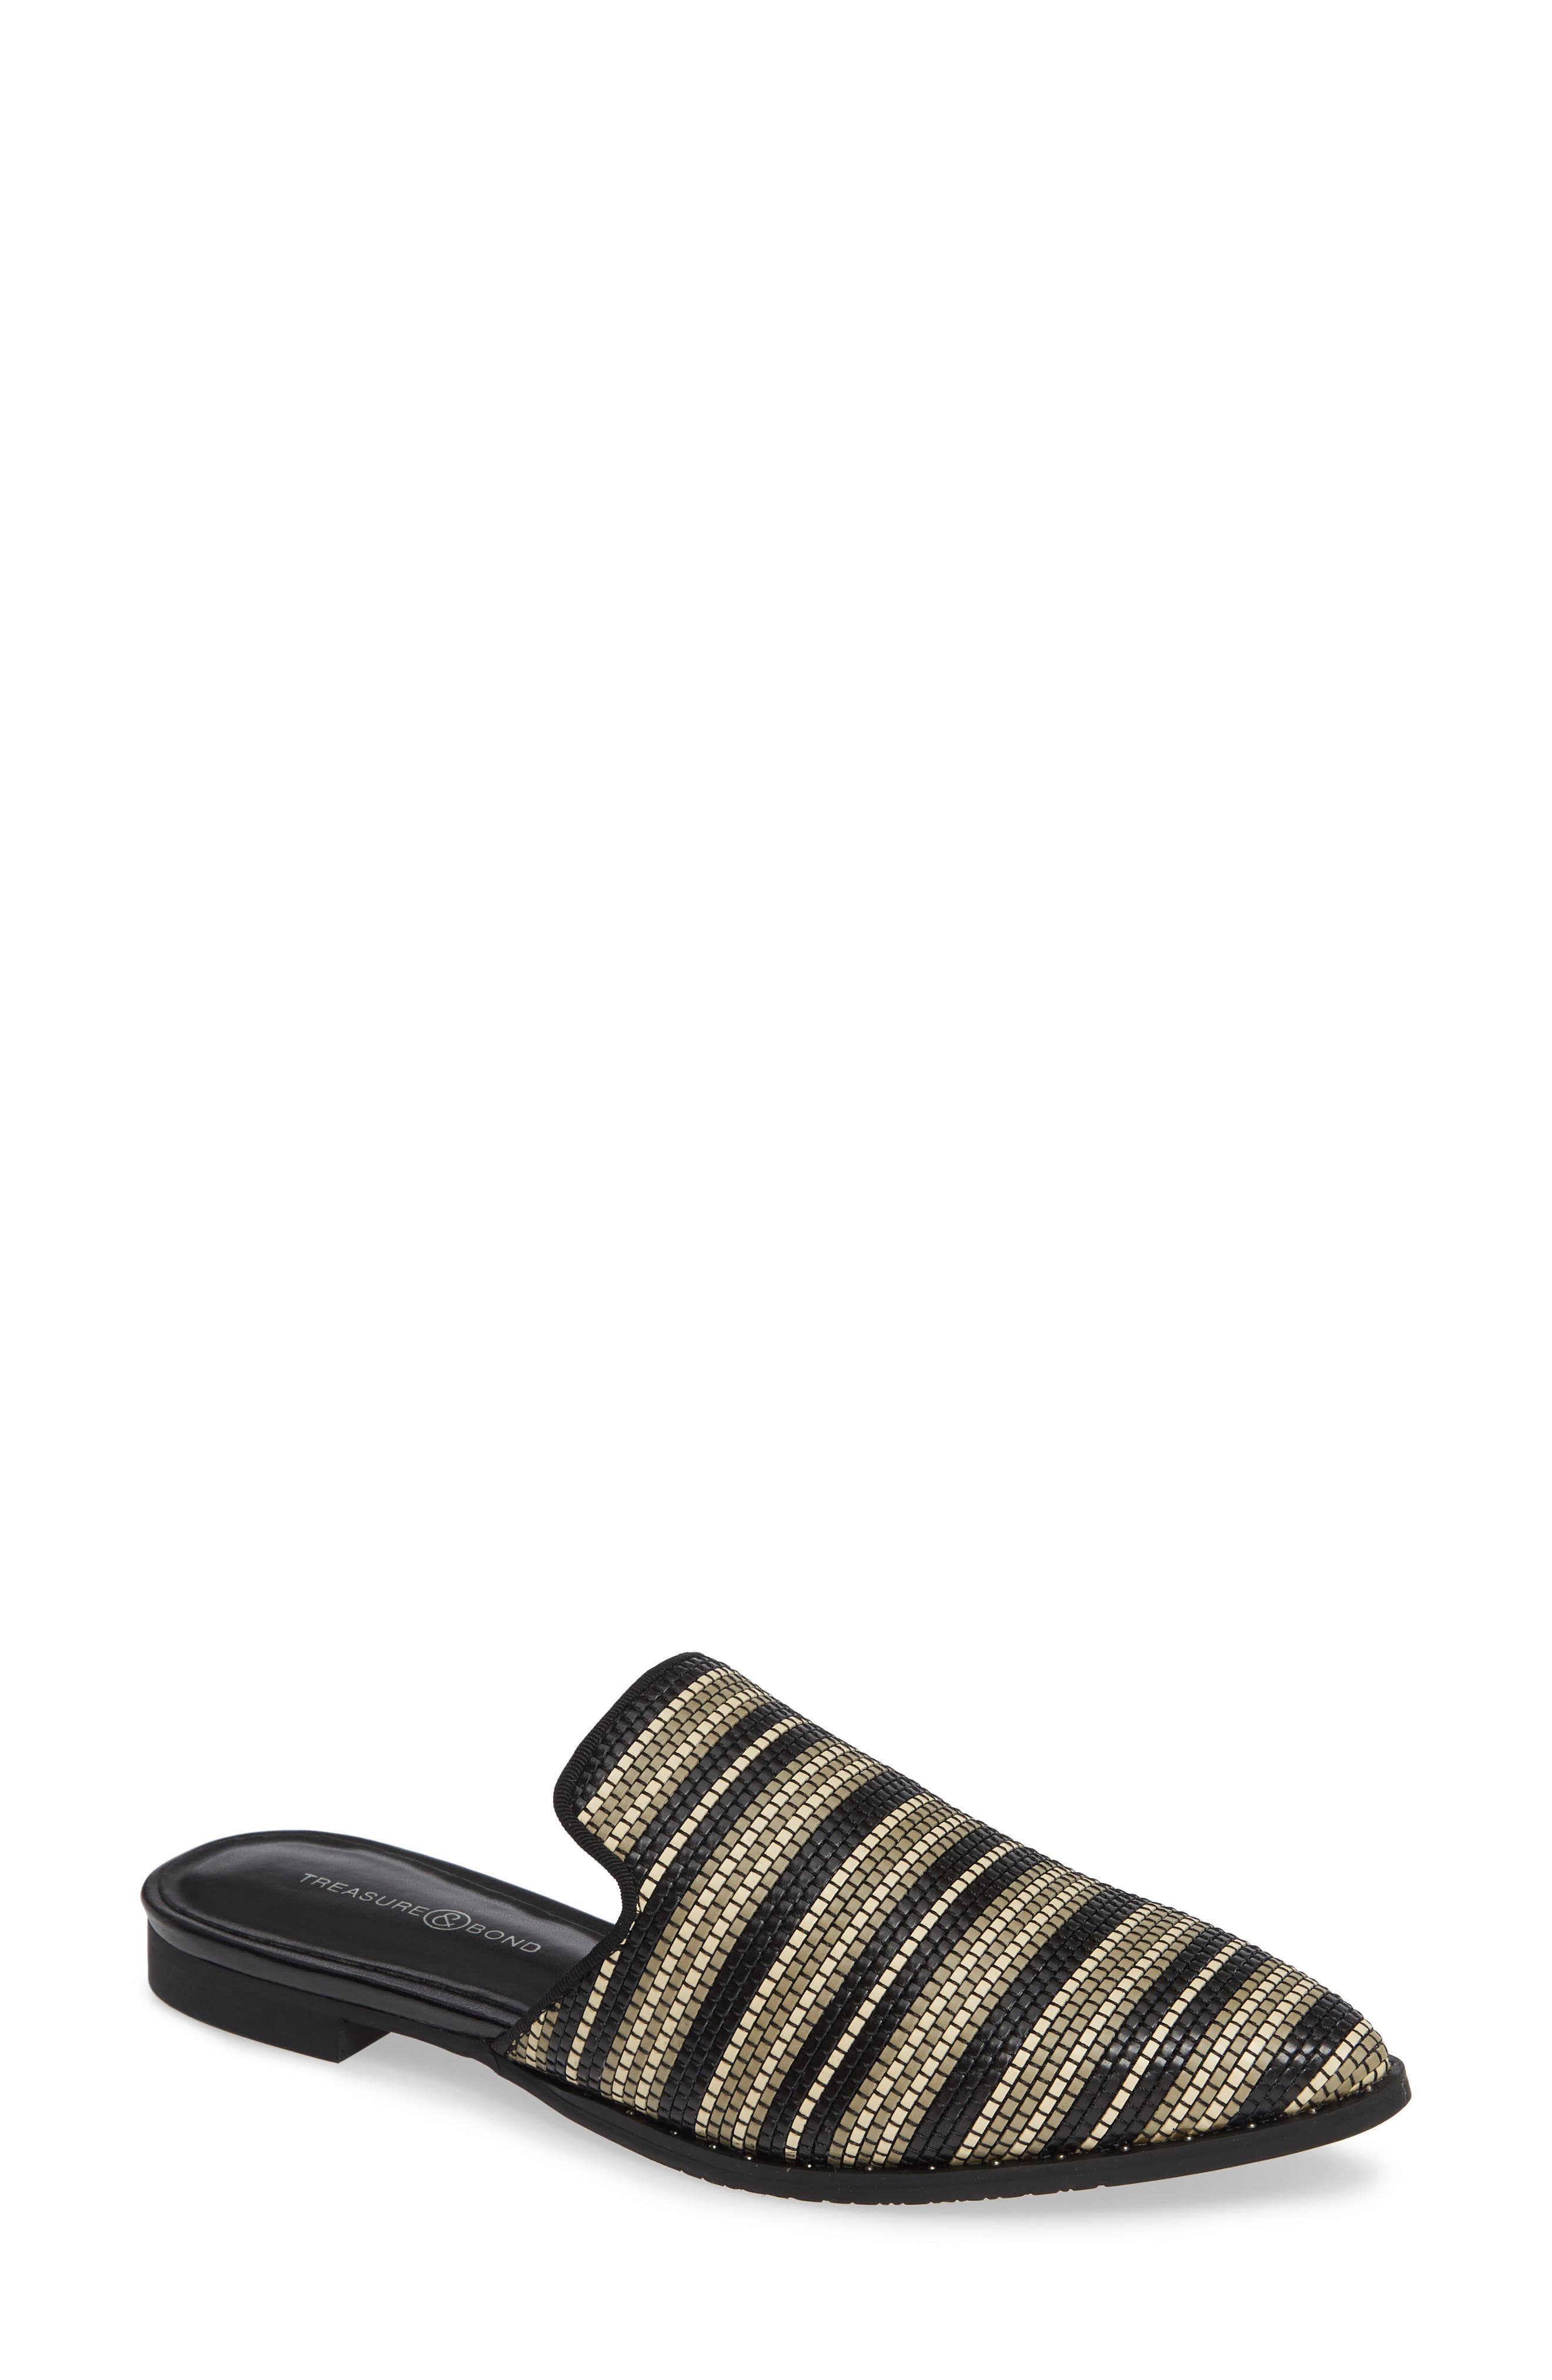 Keaton Loafer Mule,                         Main,                         color, BLACK WOVEN FAUX LEATHER